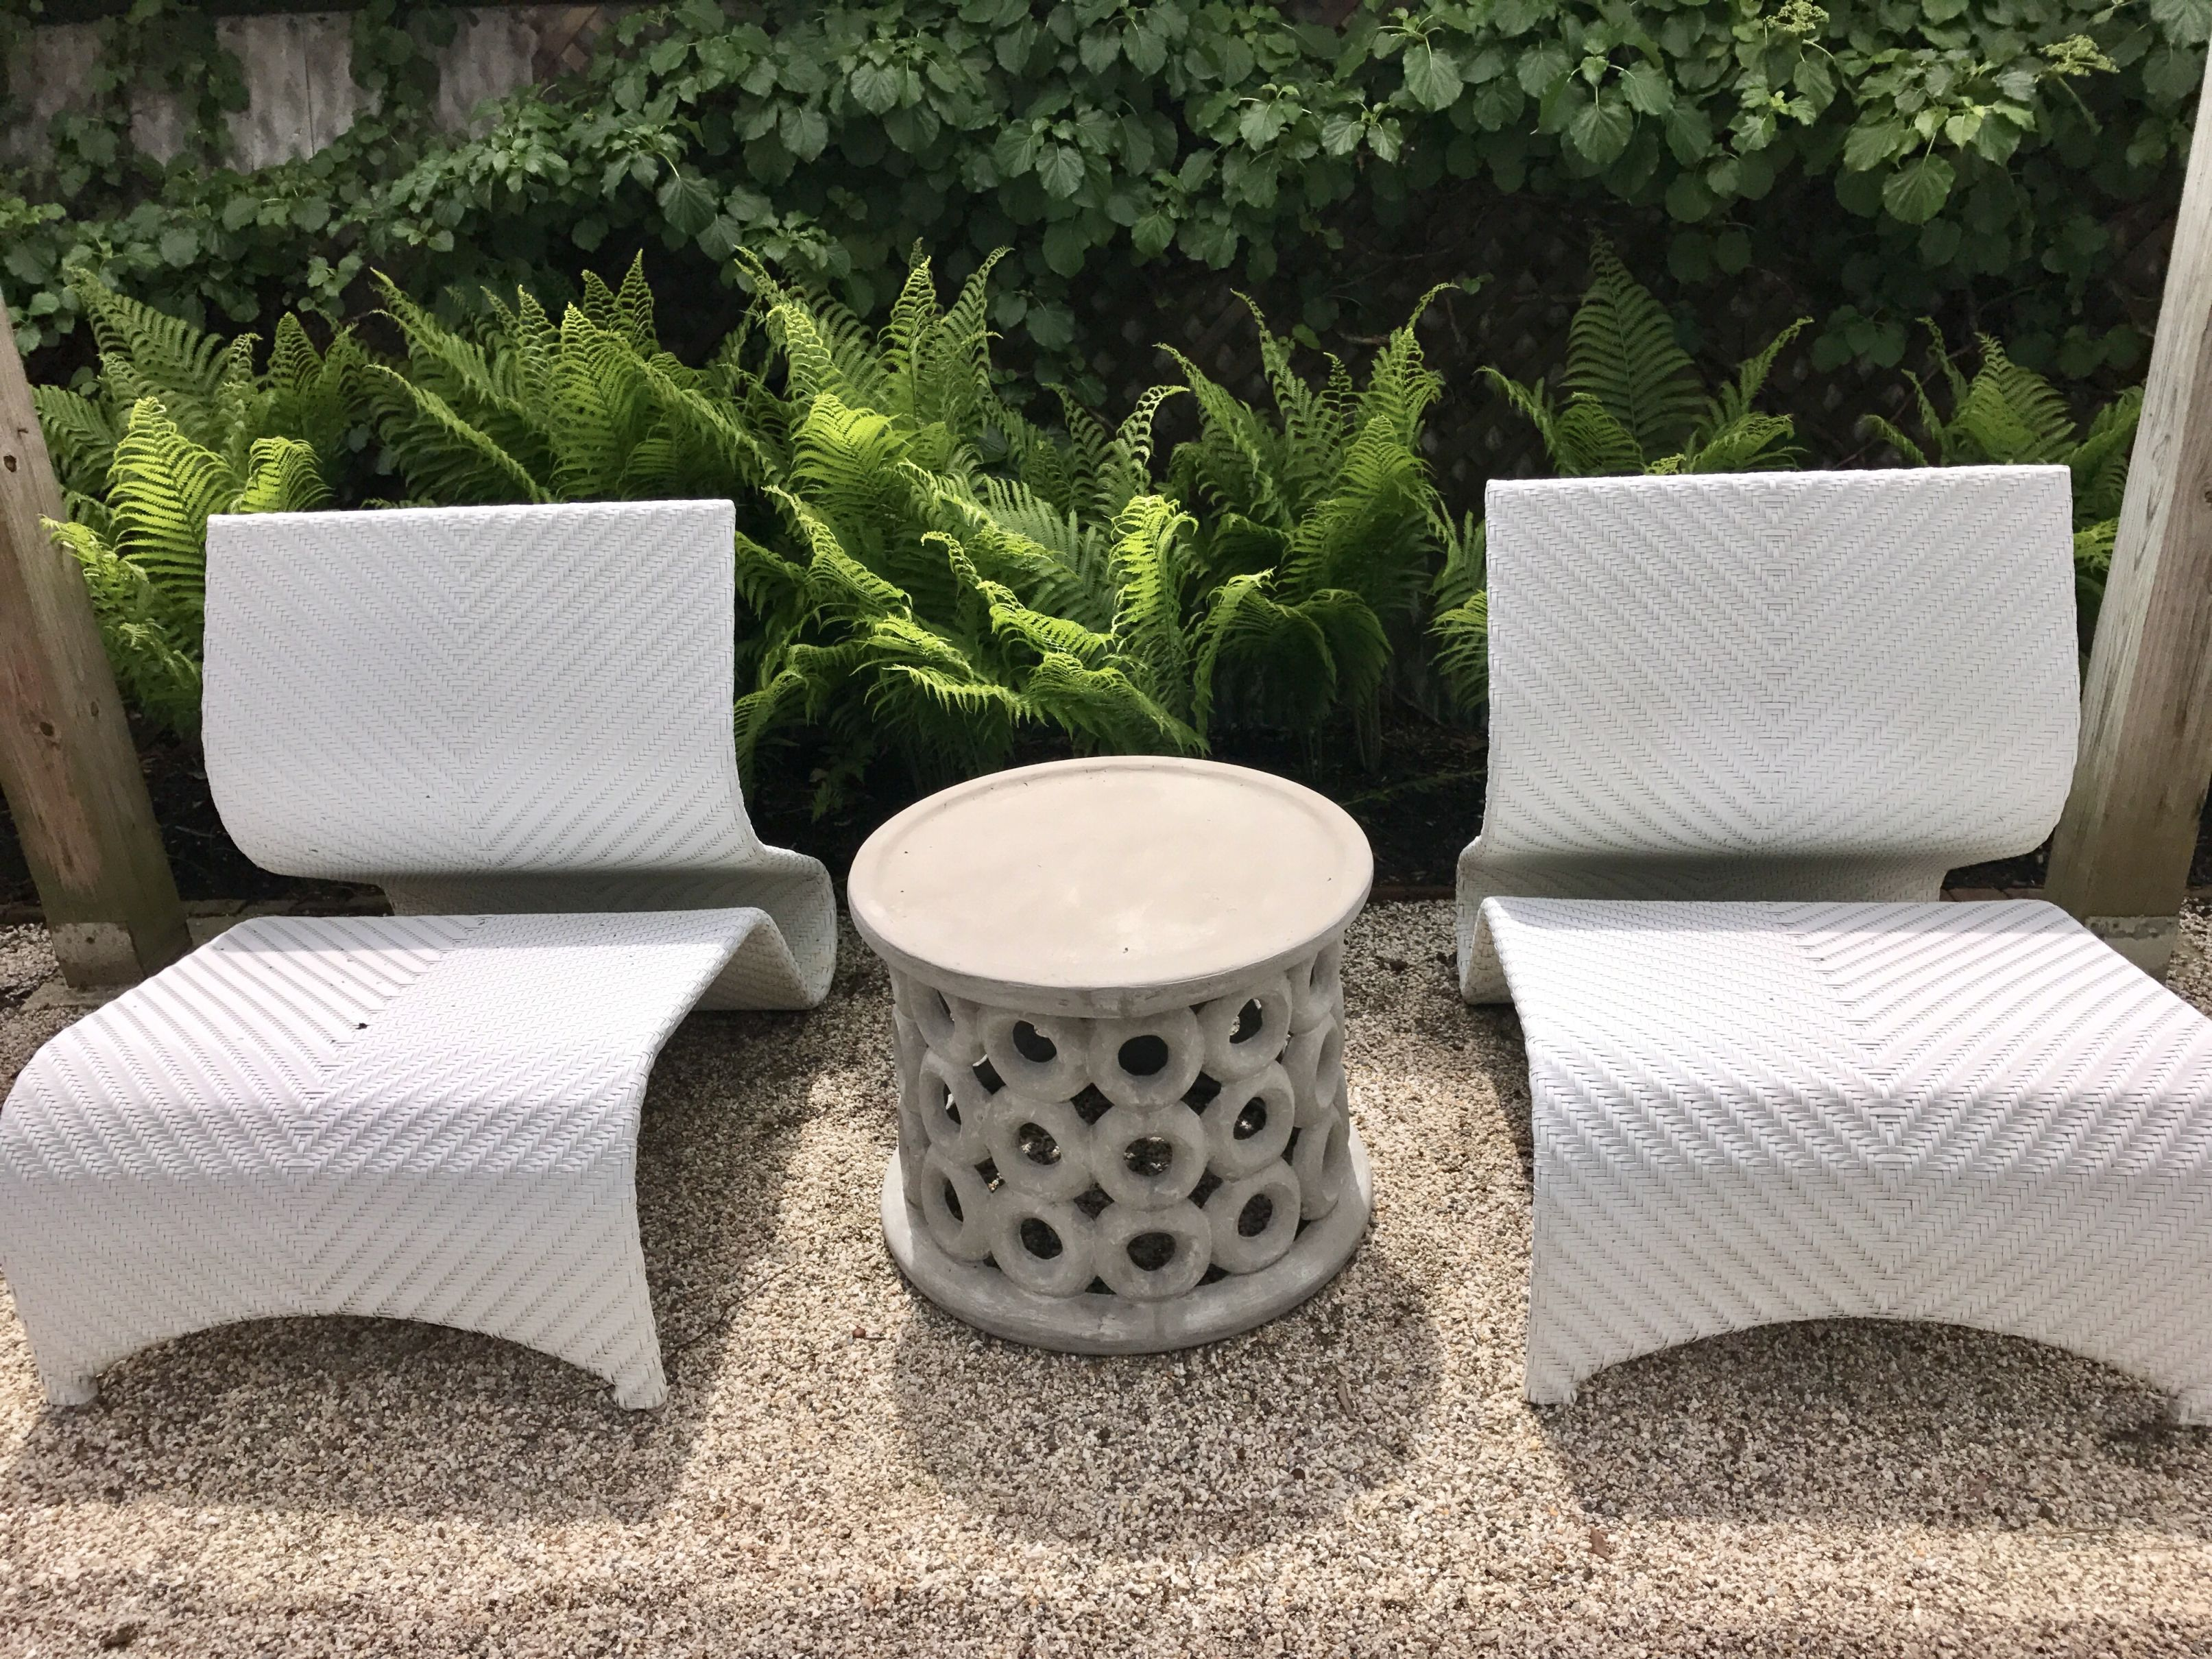 dohnet concrete outdoor side table mecox gardens fnst donut with drawer previous next pottery barn desk chair round bedside storage cottage style standard coffee height asian